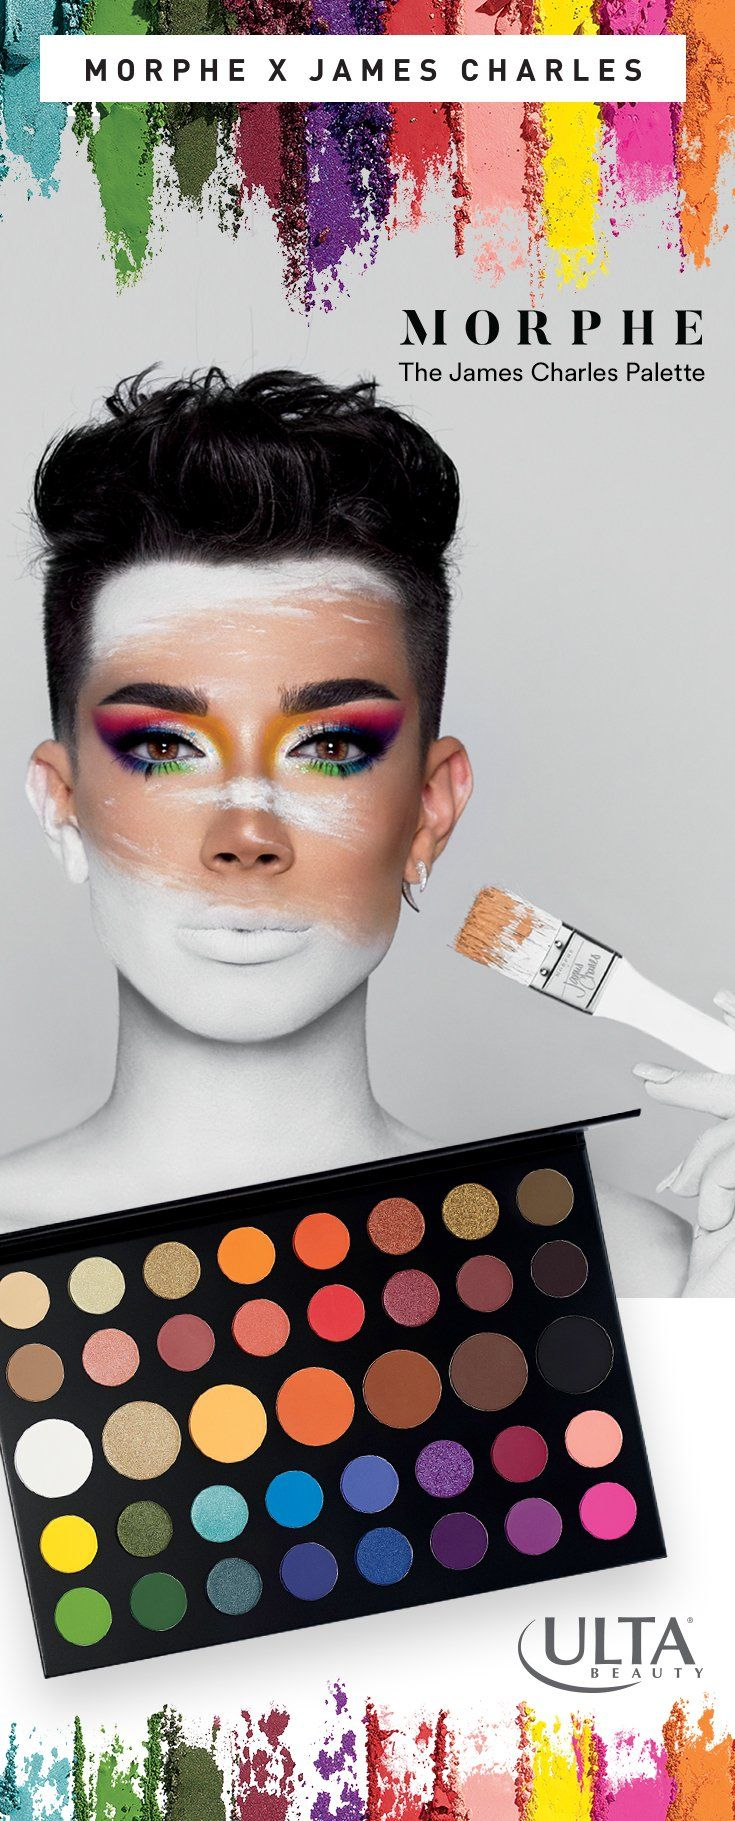 The James Charles Palette Eye Makeup Makeup Skin Makeup